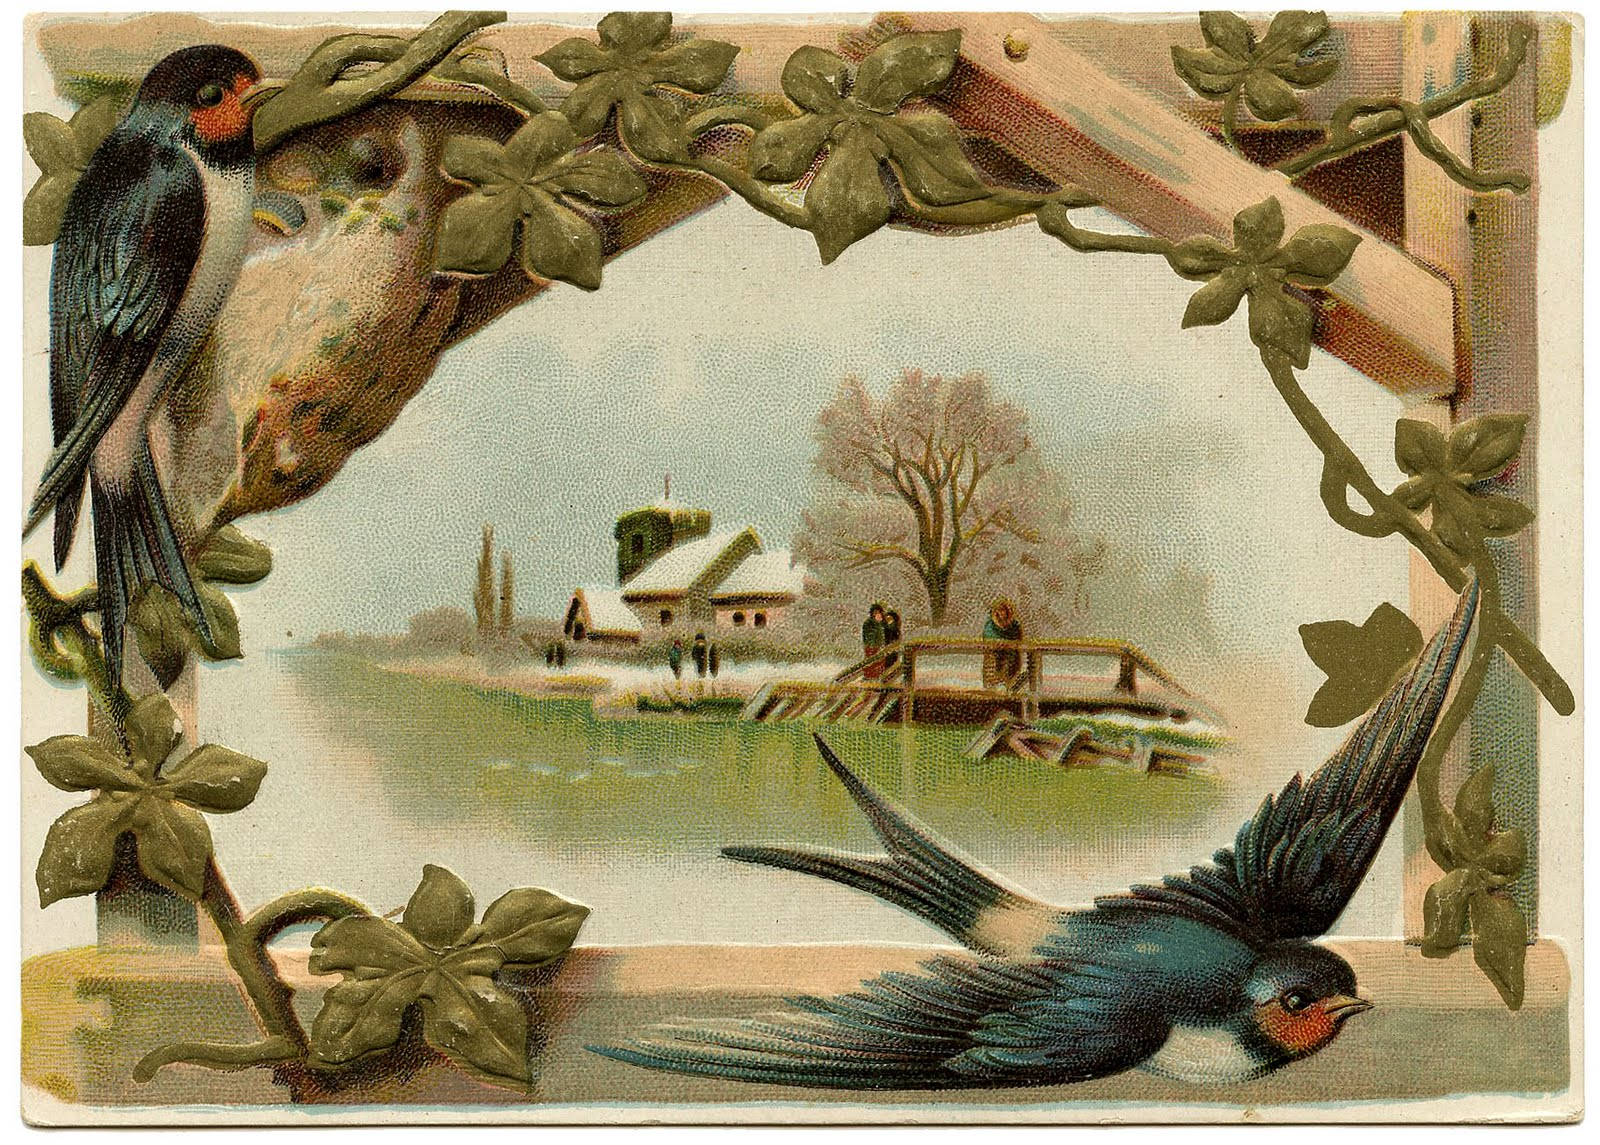 Vintage Clip Art - Lovely Swallows - The Graphics Fairy